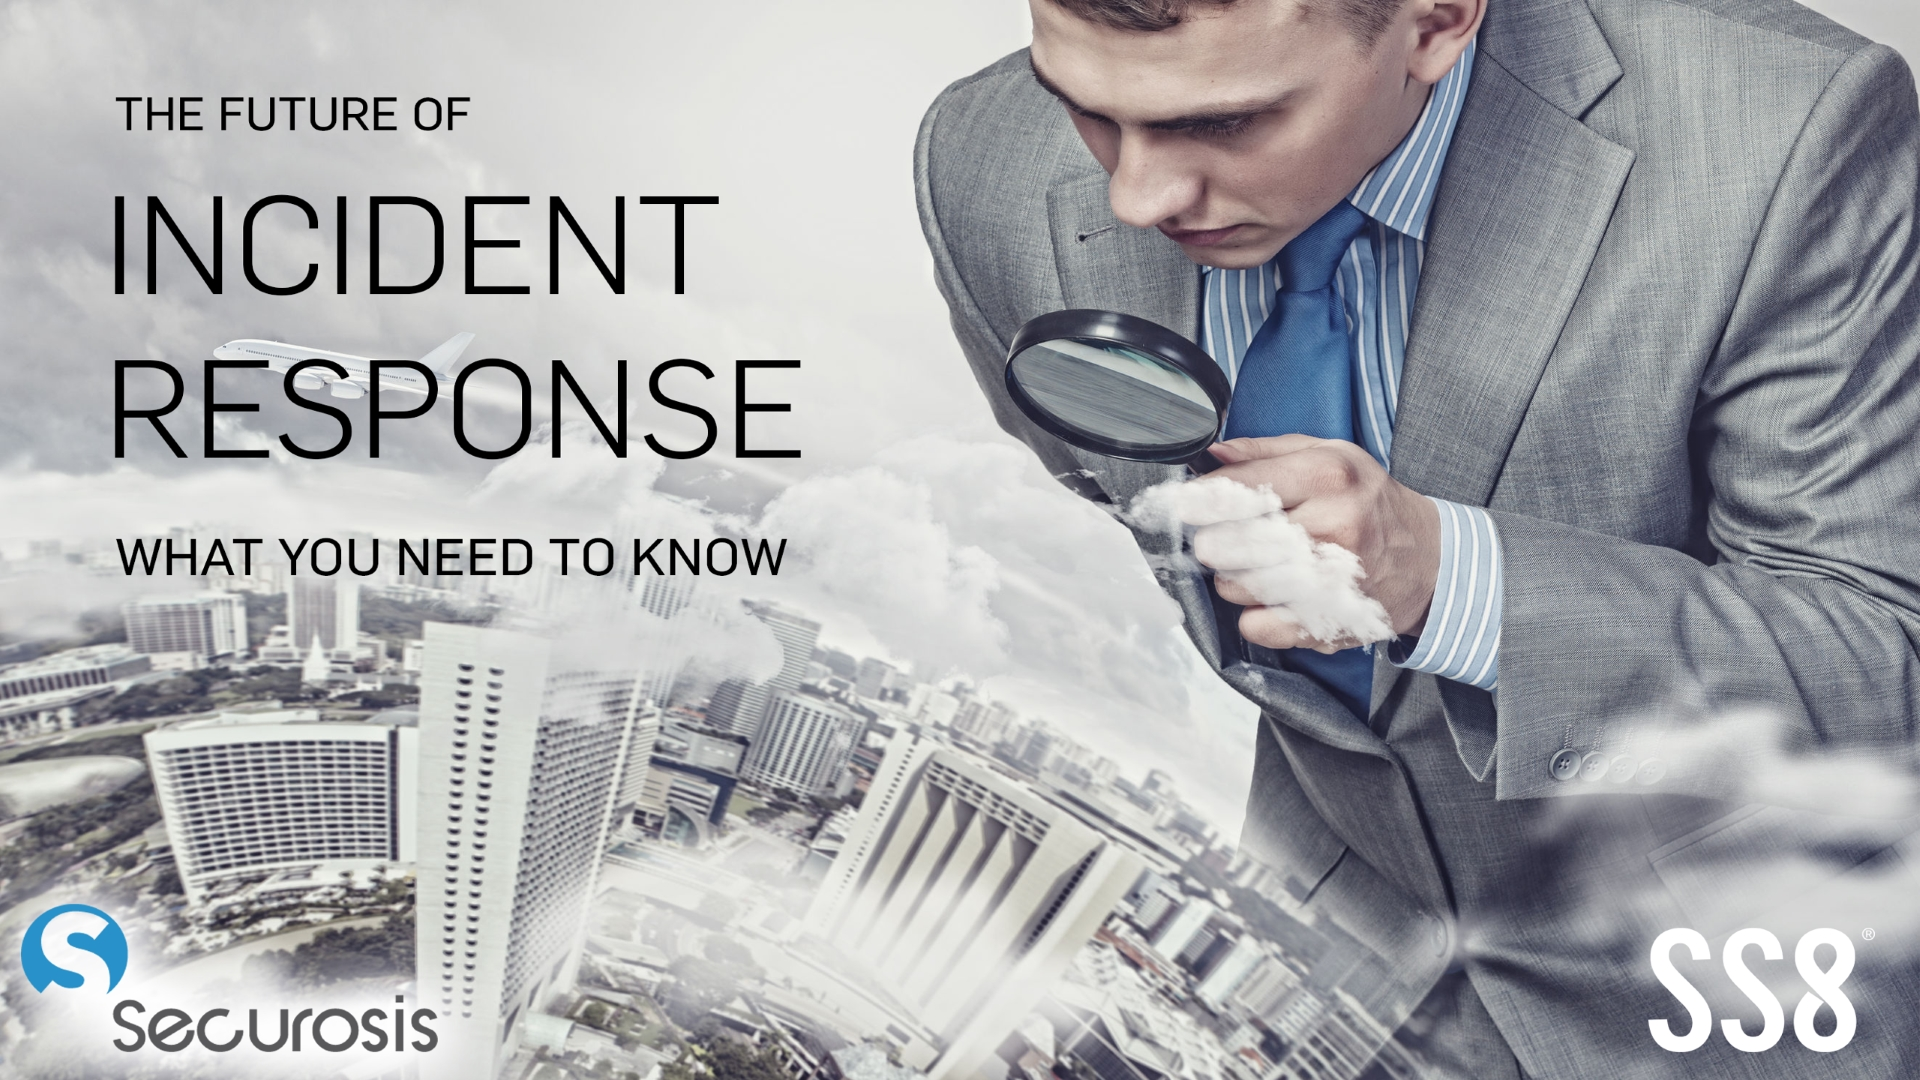 The Future of Incident Response: What You Need to Know